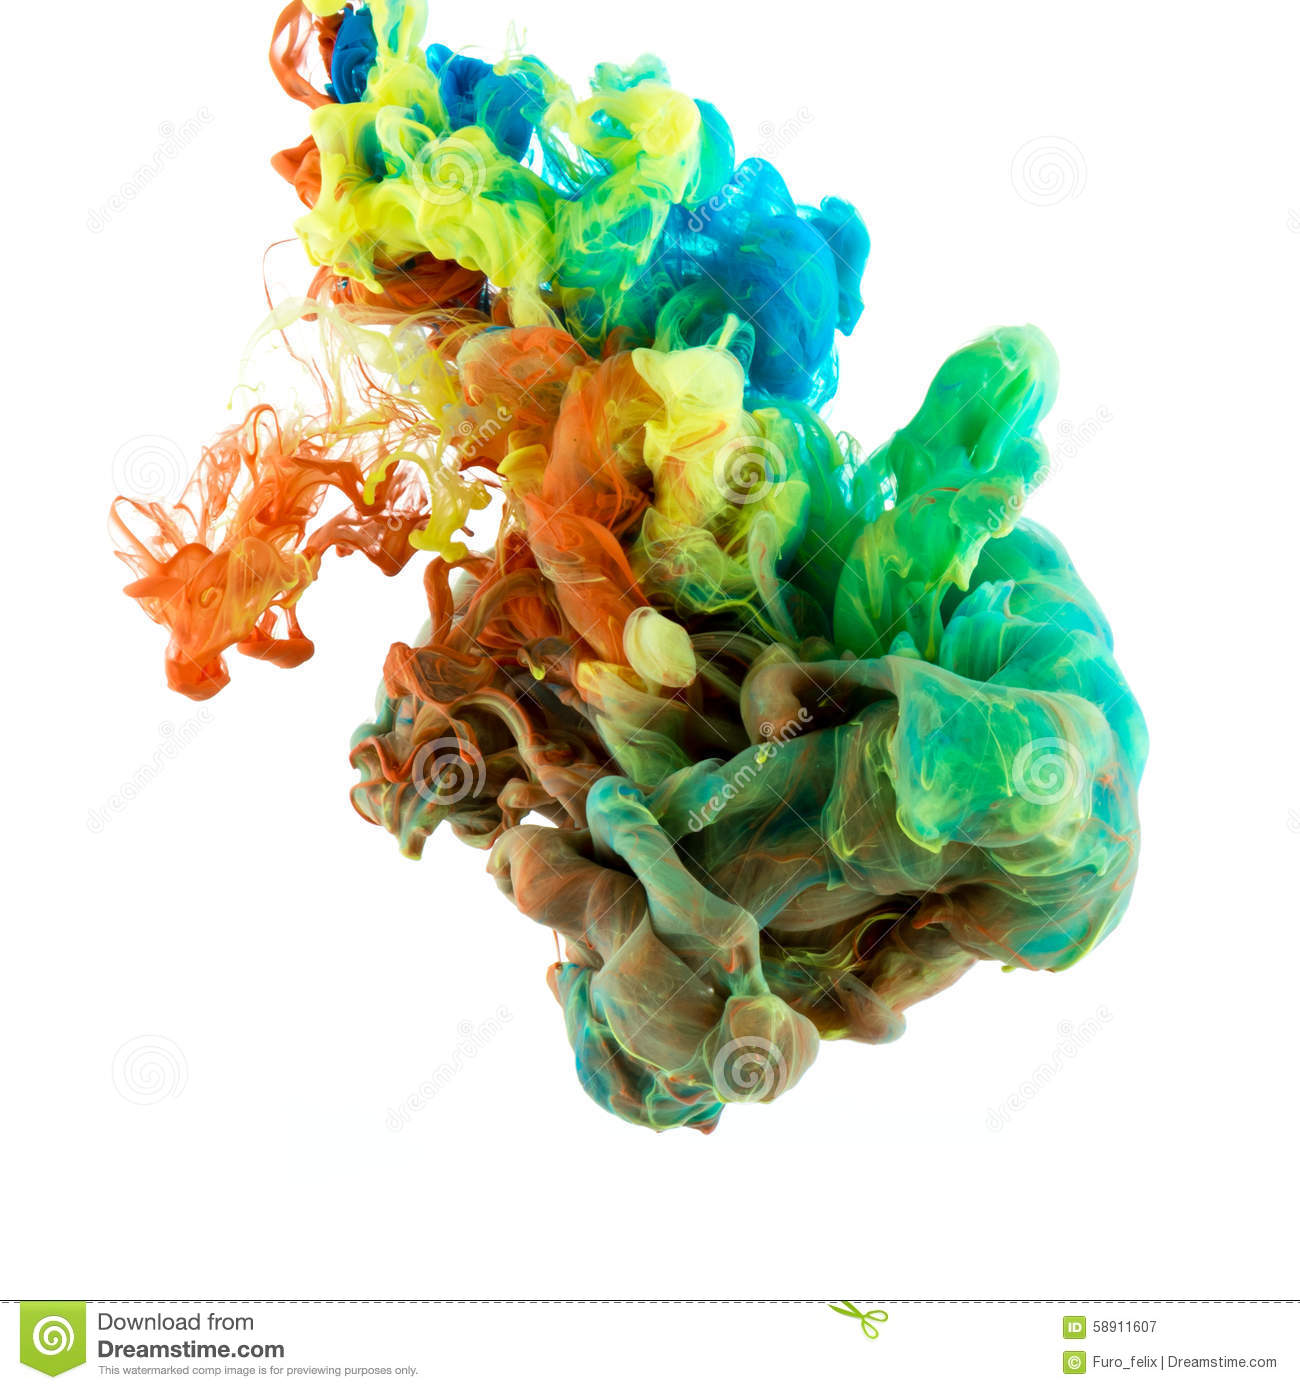 Free illustration watercolor pigment color free image - Royalty Free Stock Photo Download Absract Color Paint